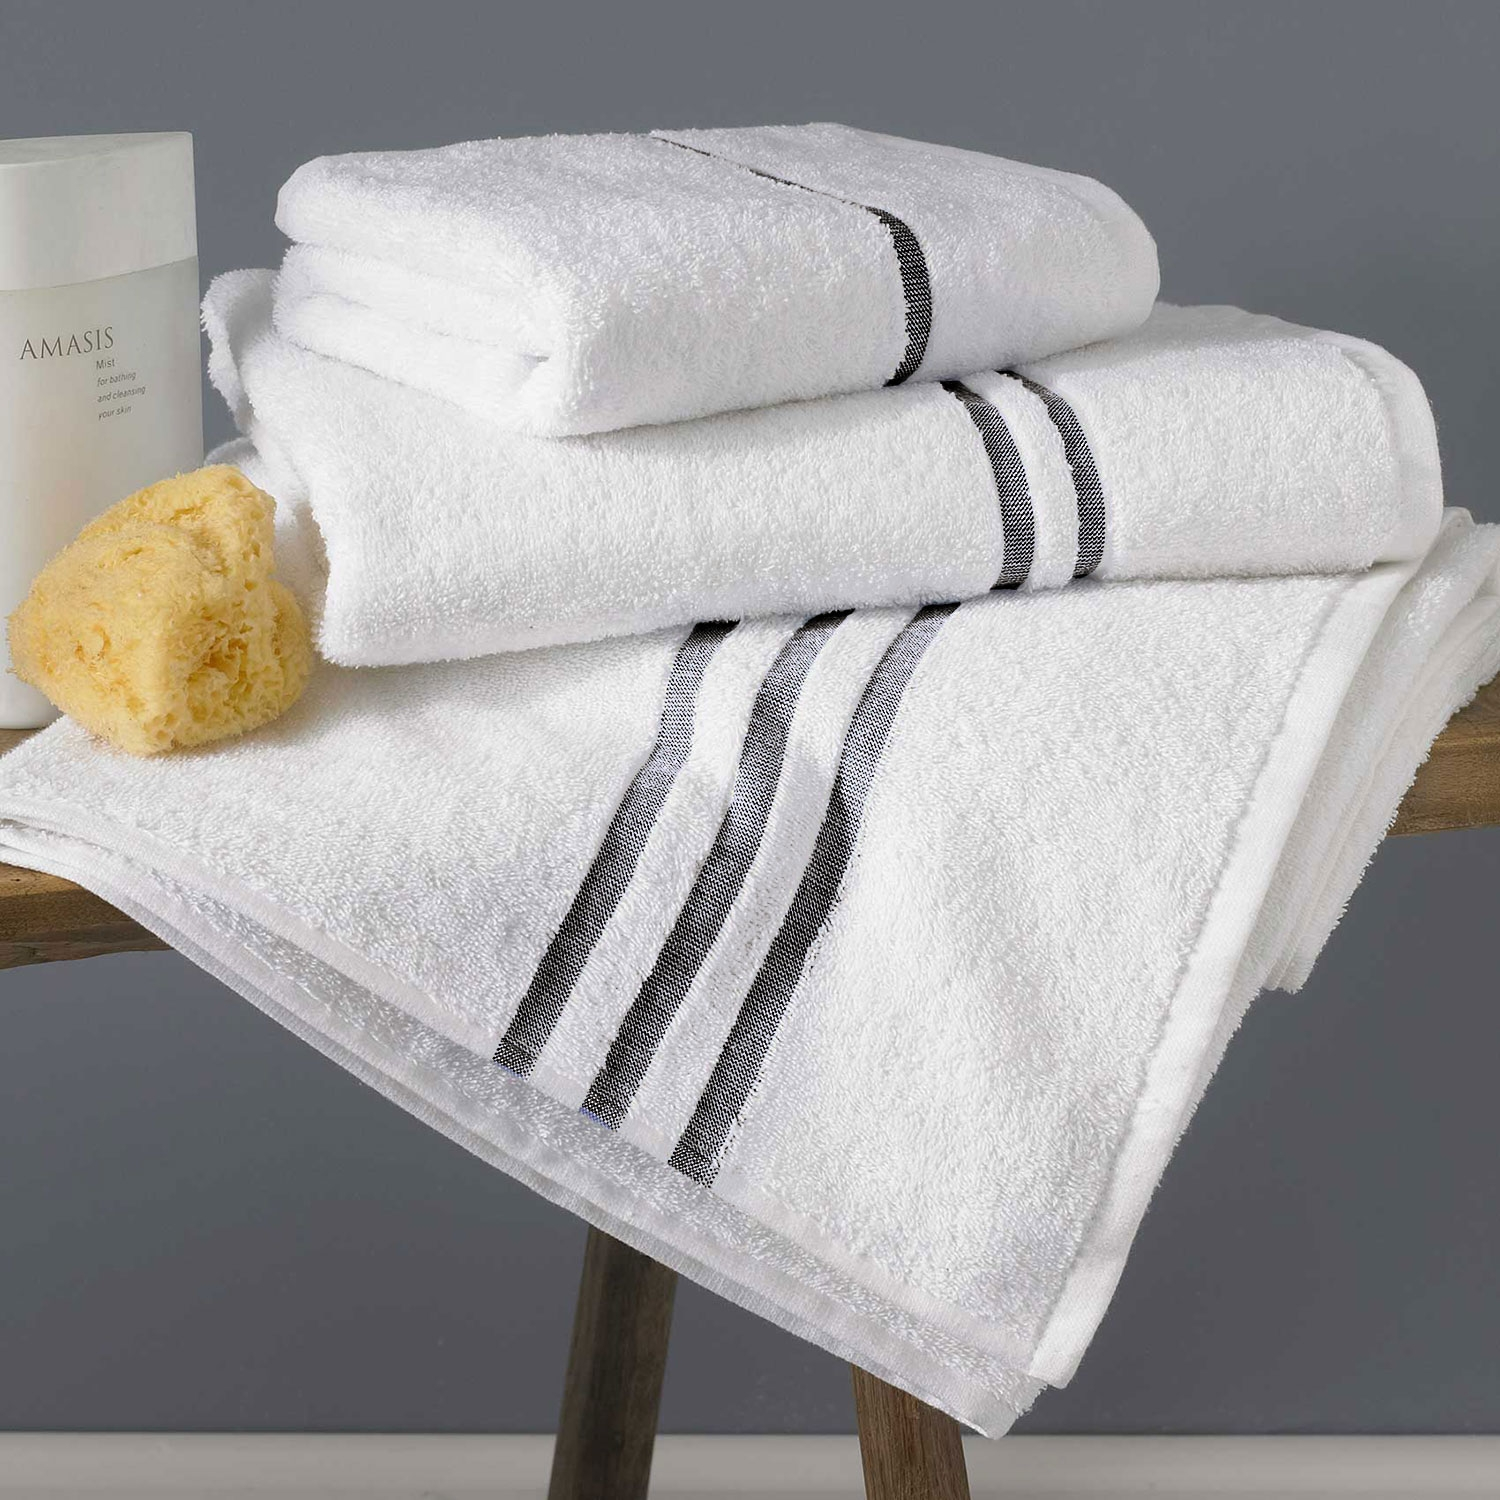 GRAPHITE CLOUD TOWELS